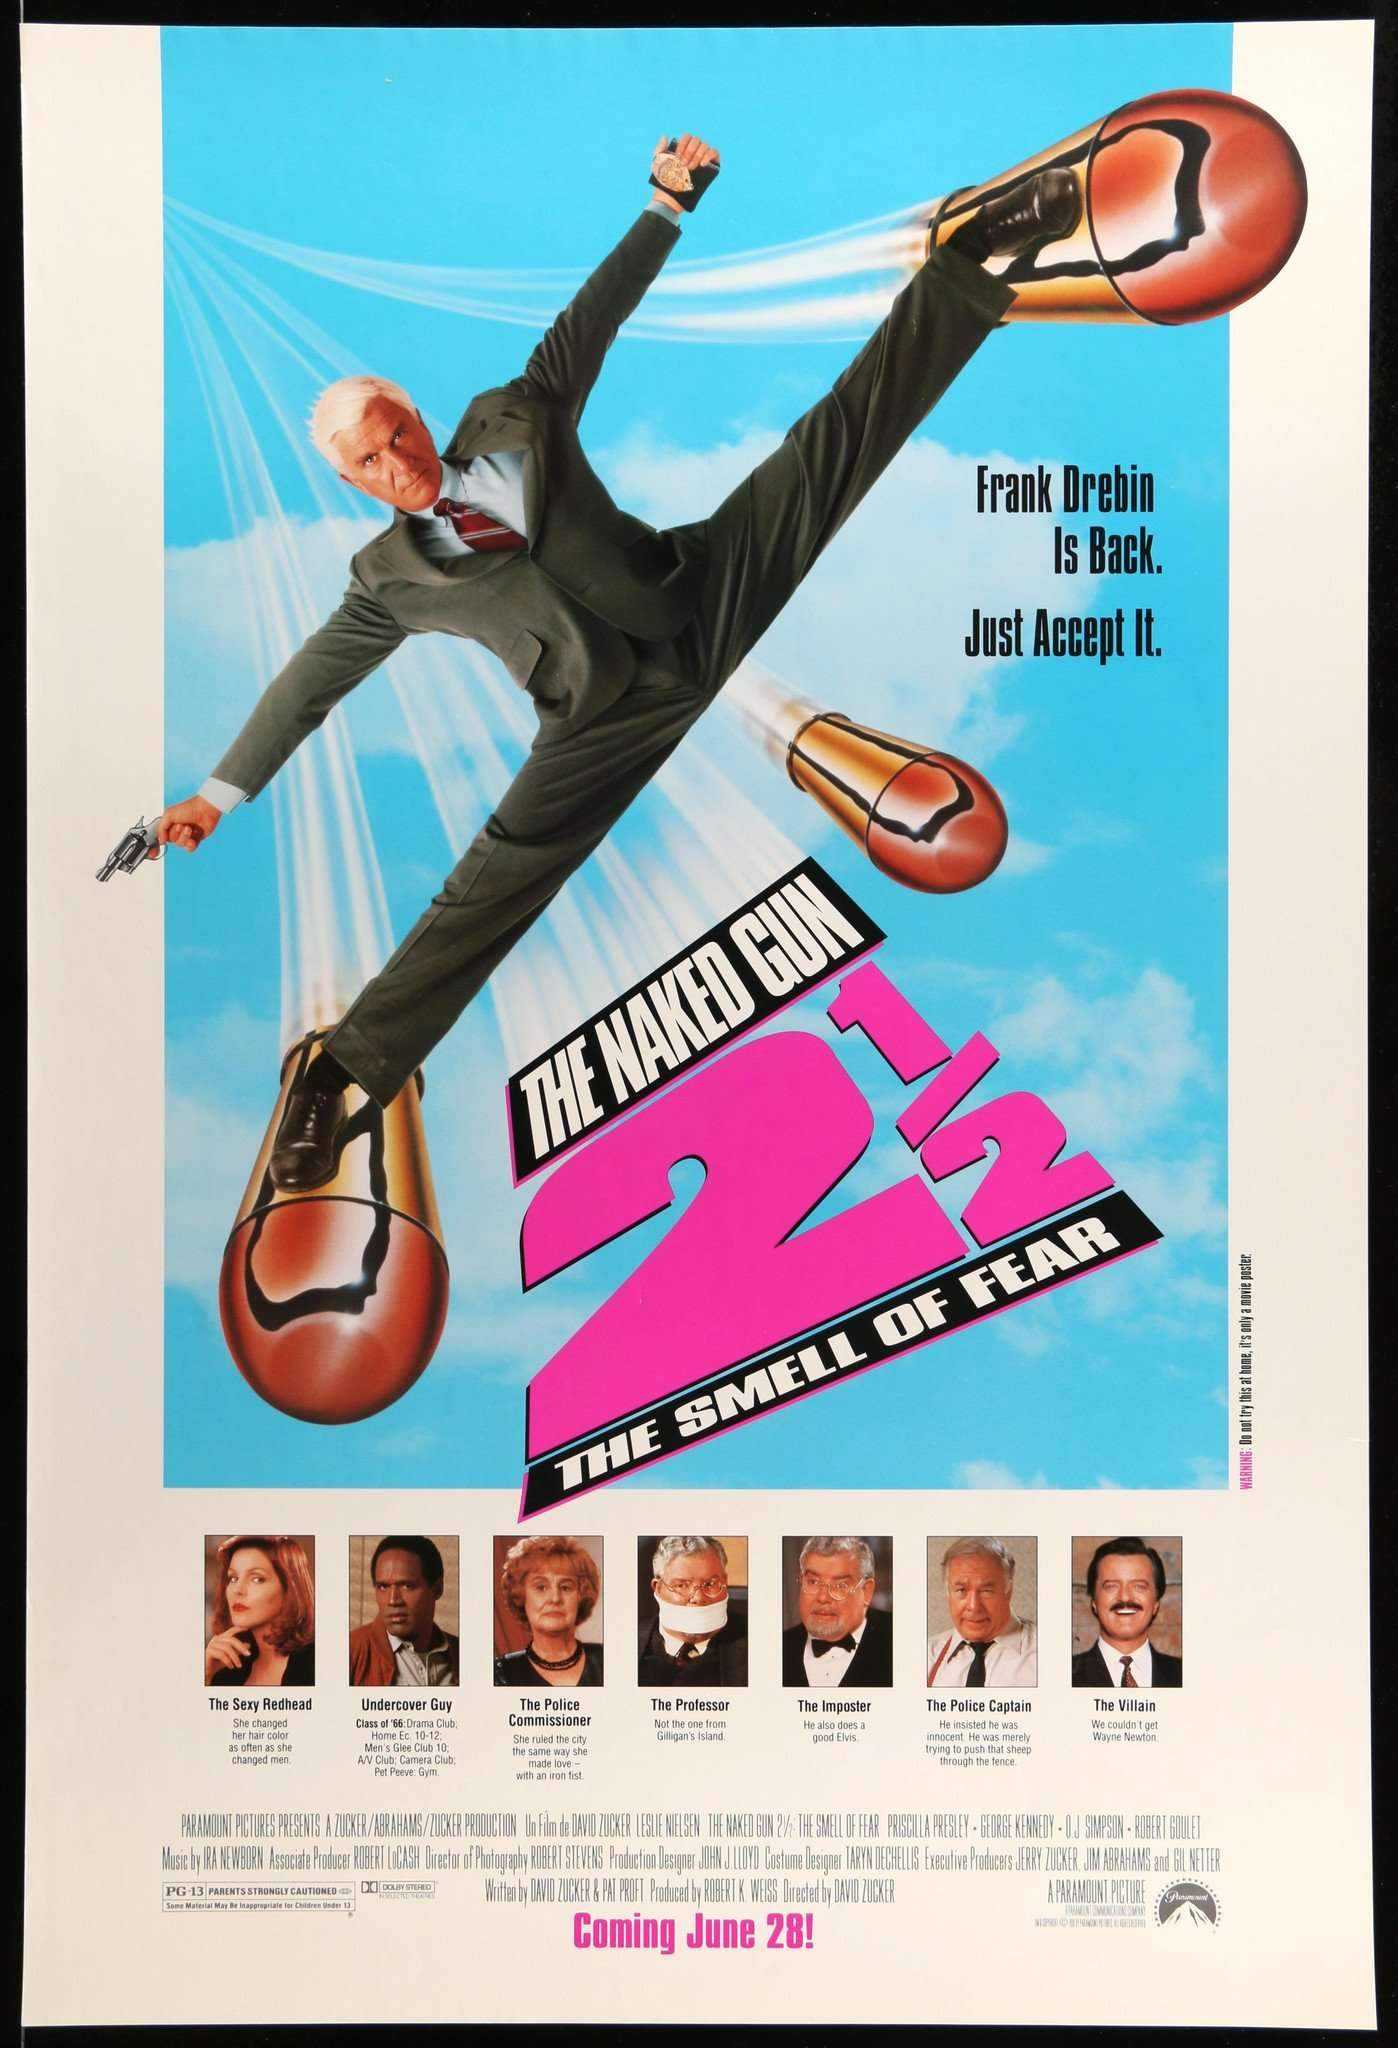 The Naked Gun 2 poster